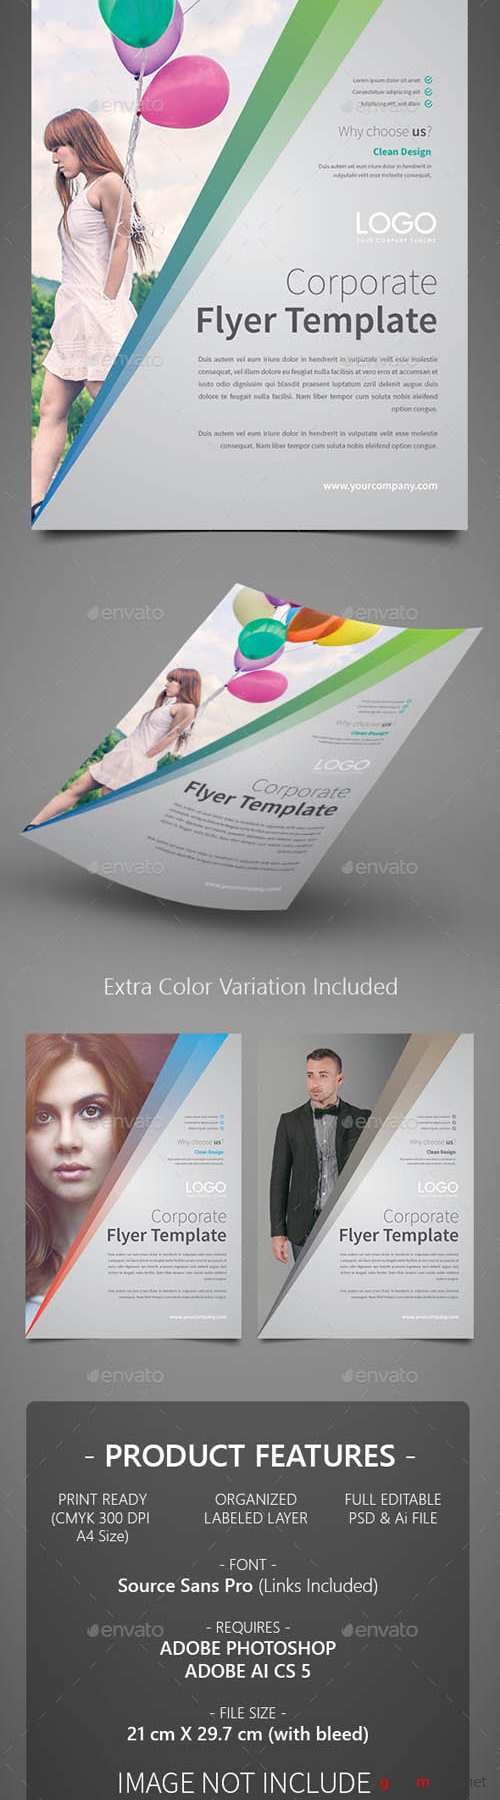 Corporate Flyer Template 8 15705768